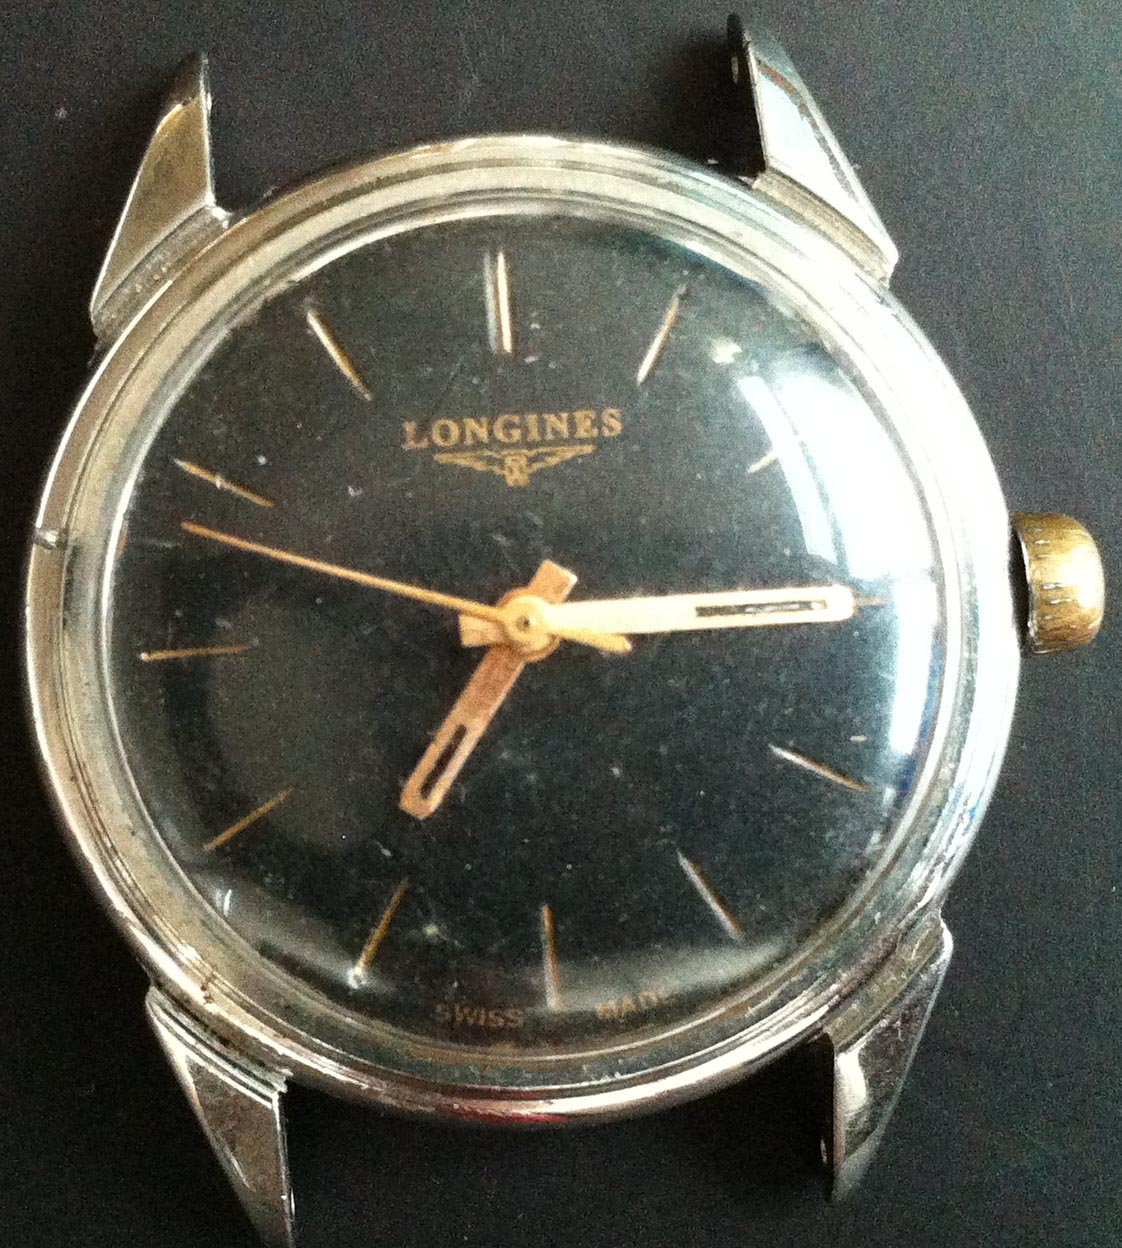 1956 vintage longines manual winding watch in stainless